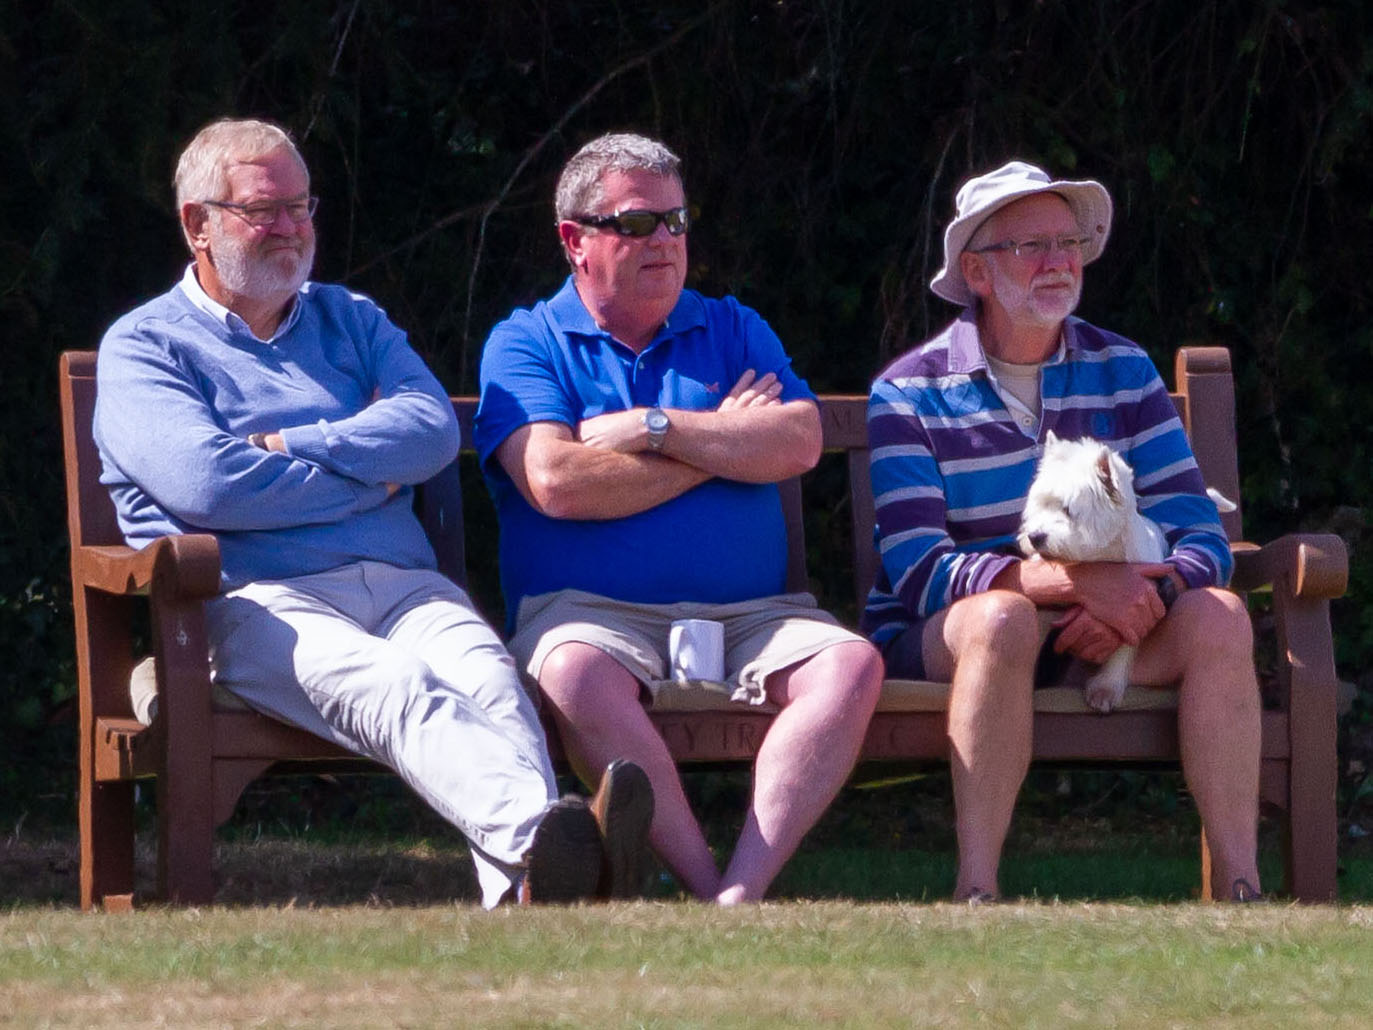 Paul Bradley (far right) and friends enjoying the view from the boundary during a game at Bovey Tracey. Photo: Mark Lockett